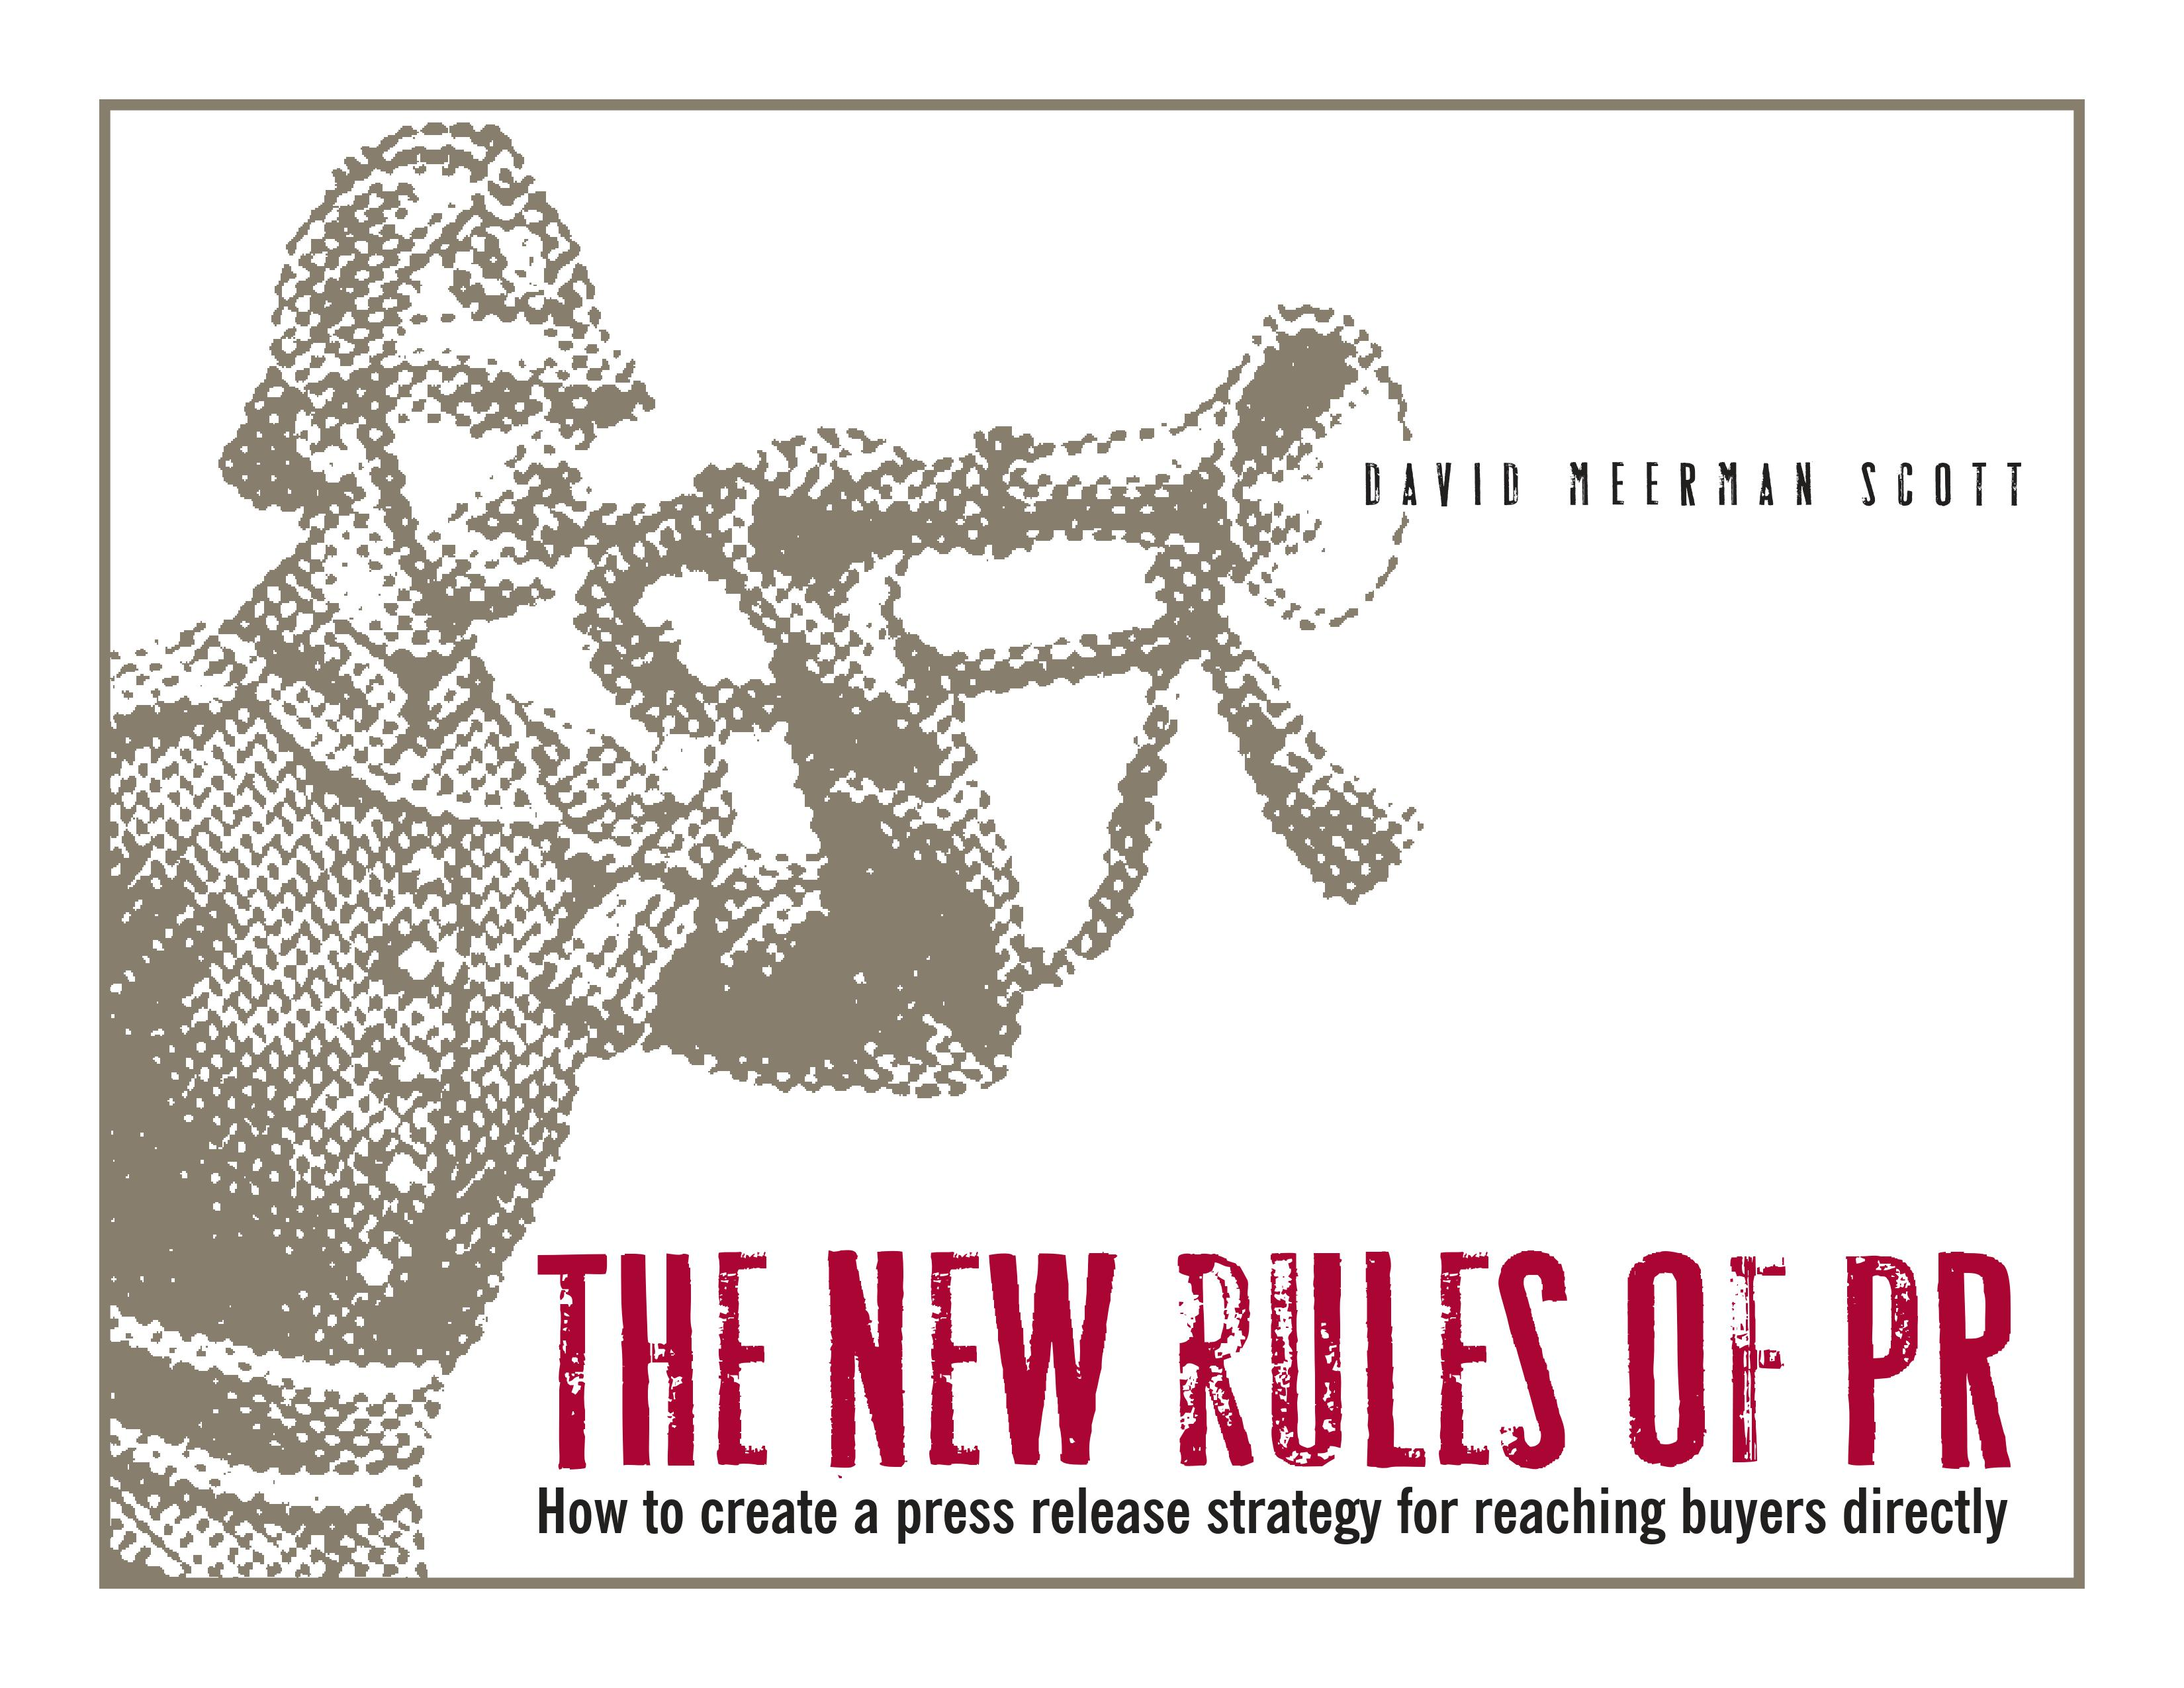 New Rules of PR